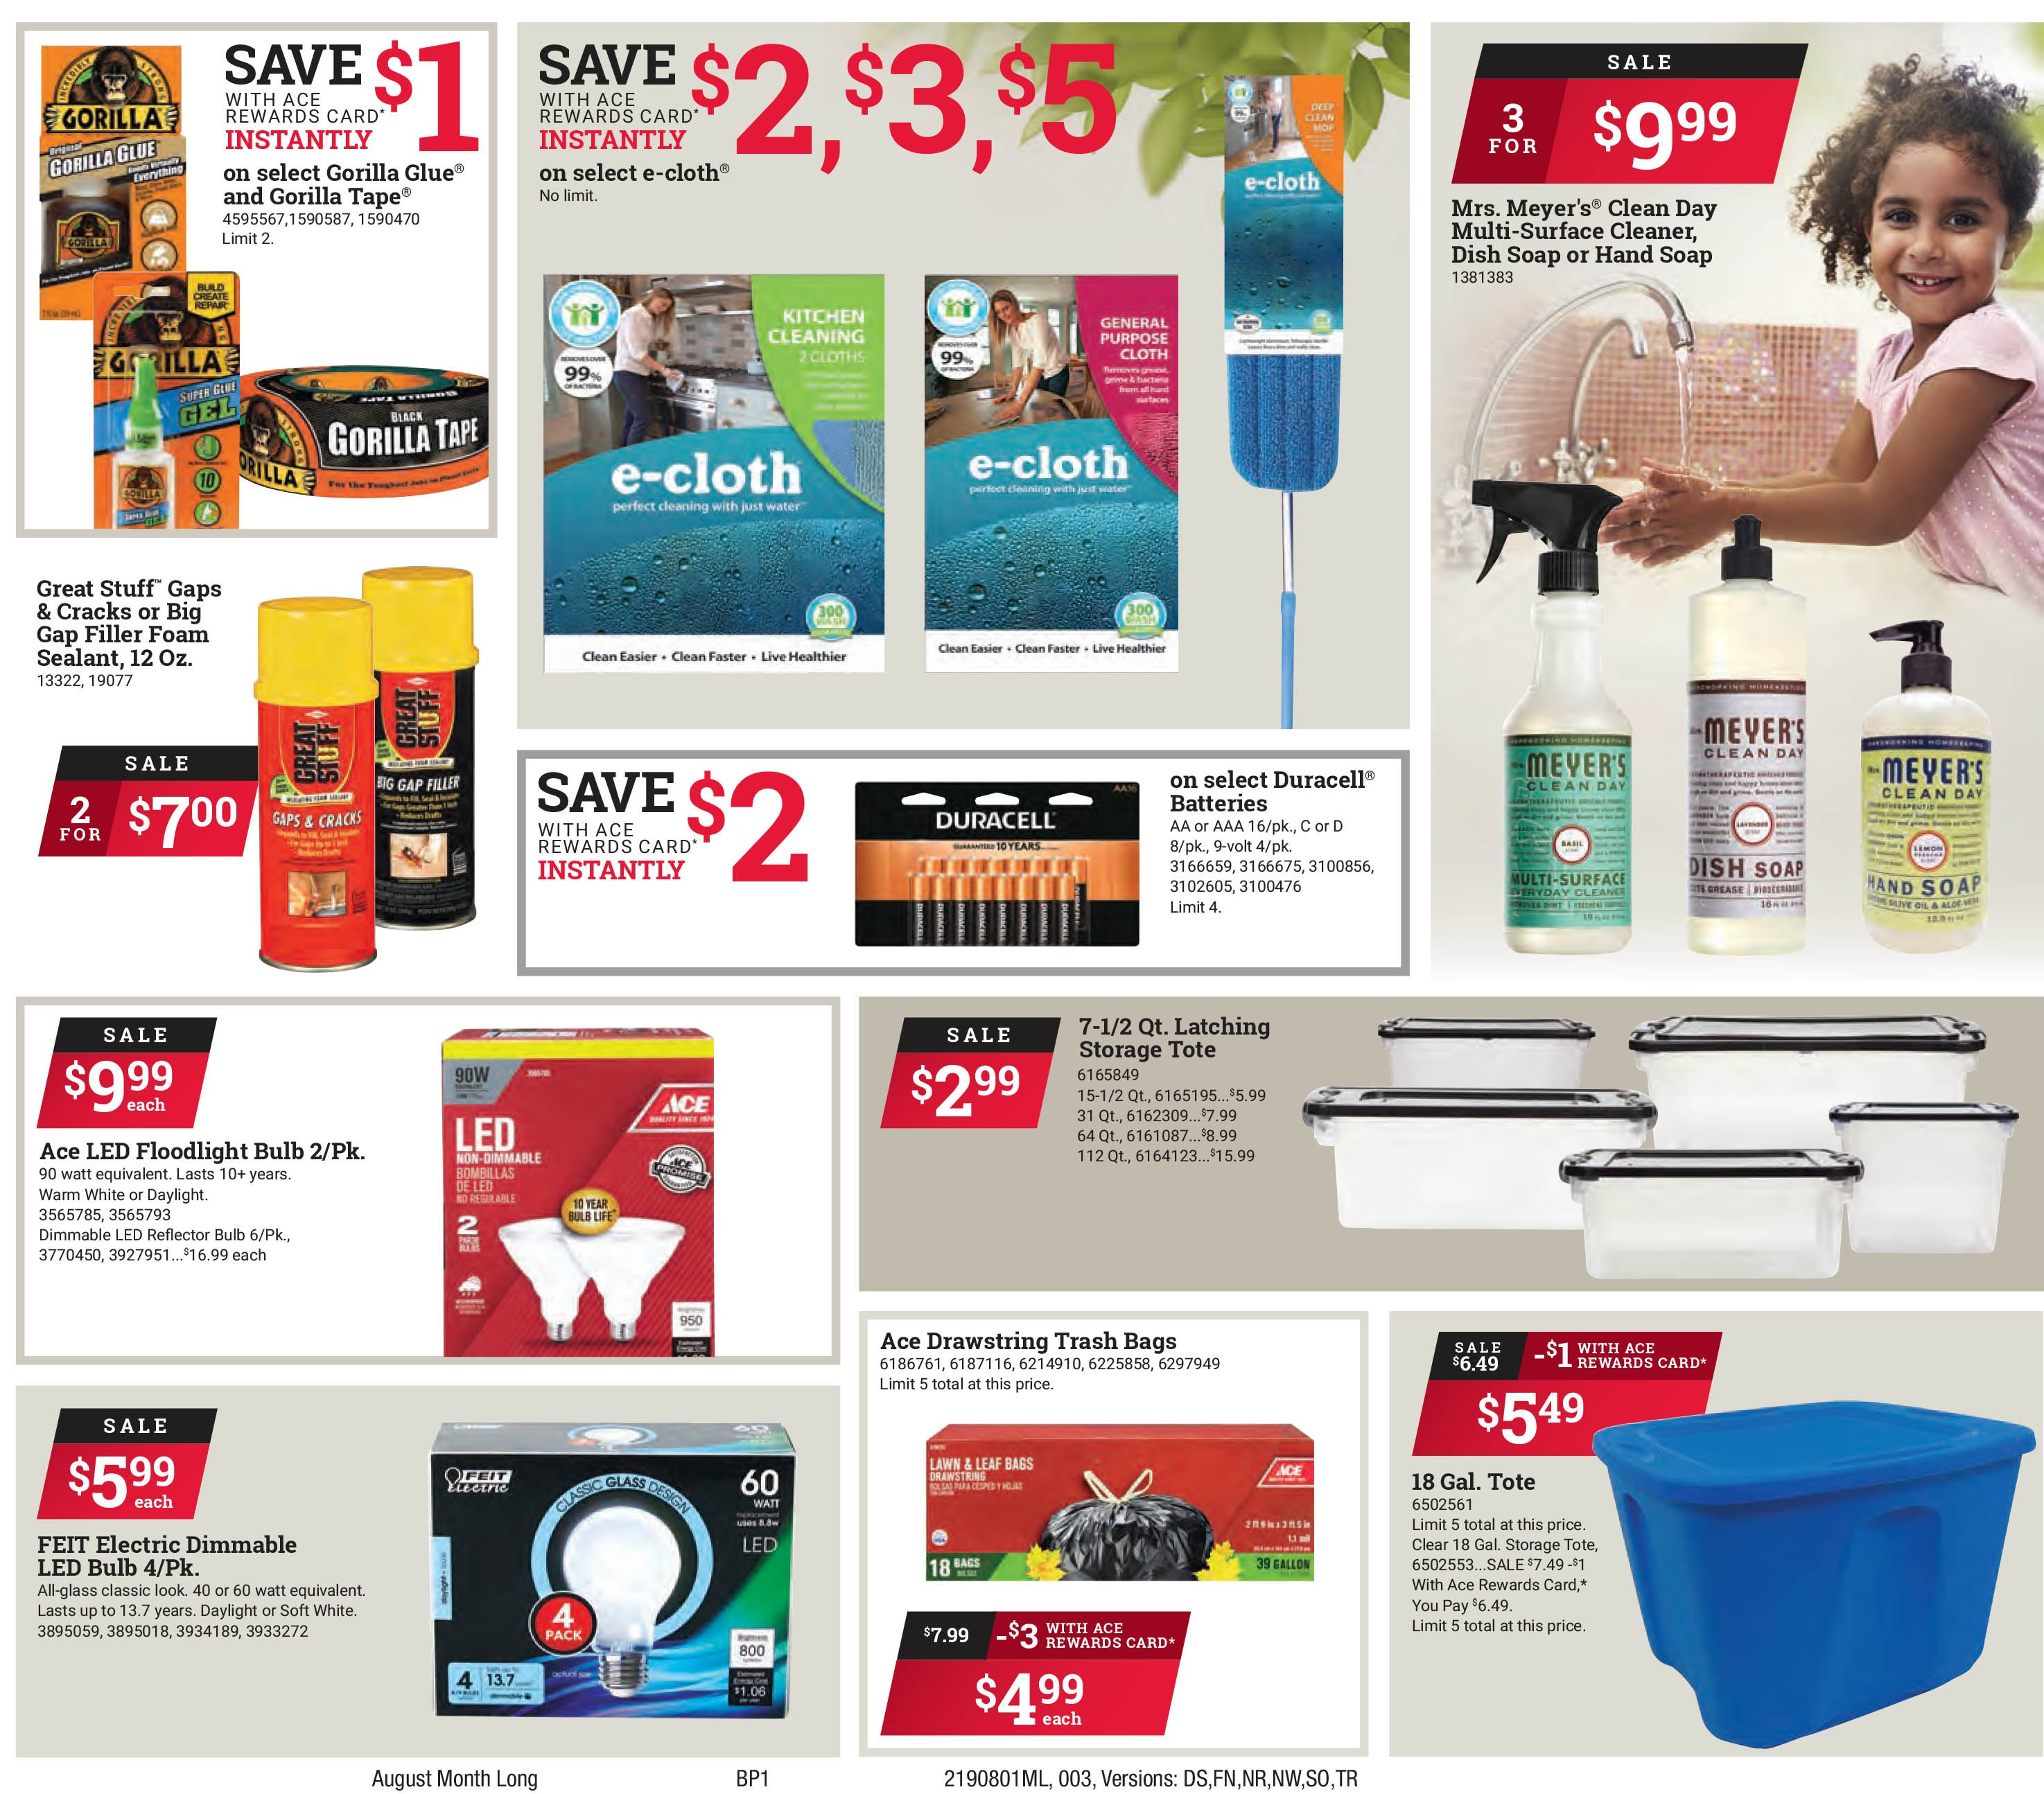 Great Falls Ace Hardware | Tools, Hardware, Painting Supplies